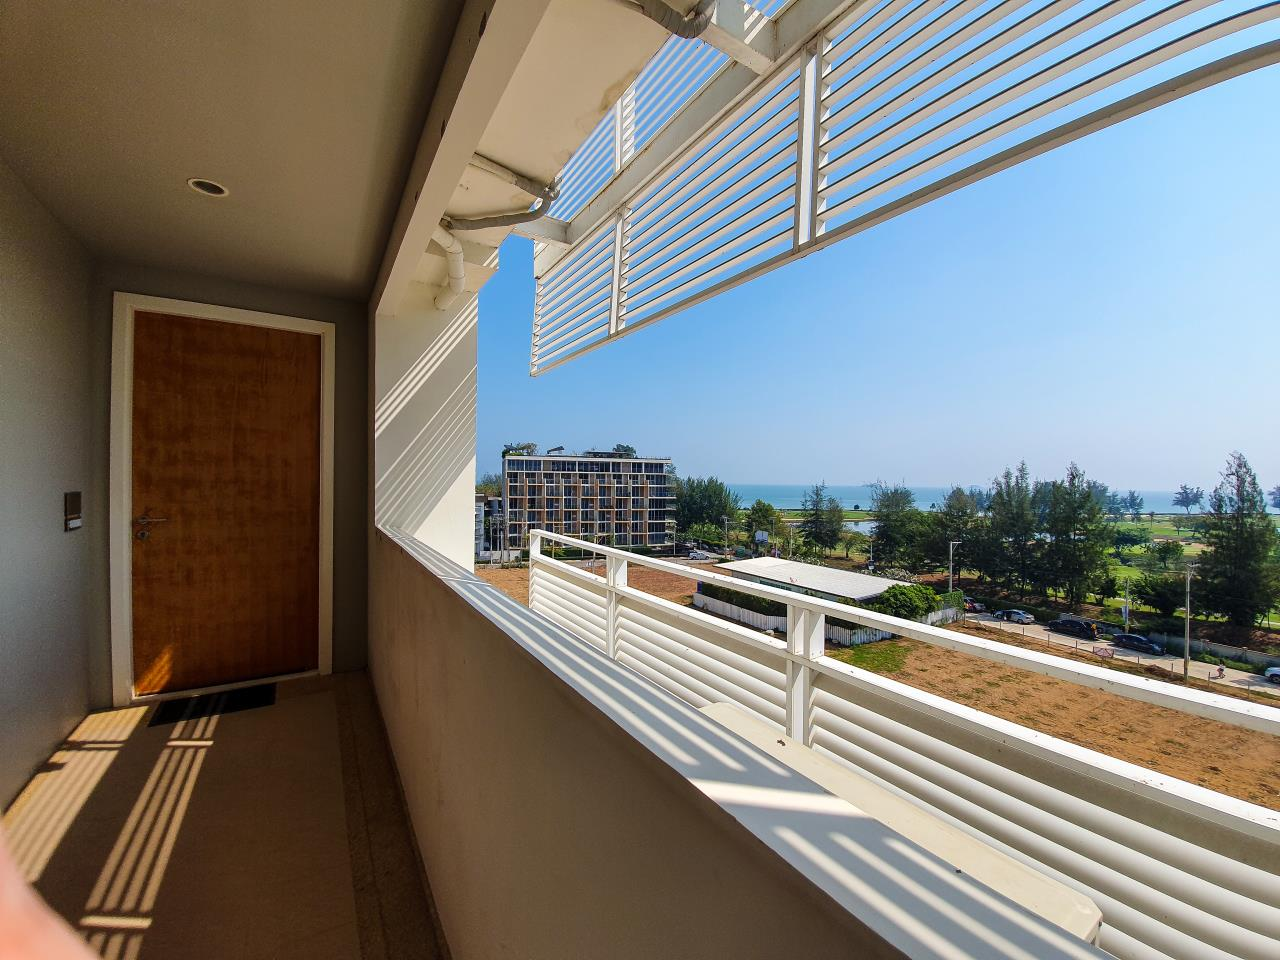 HOME - Real Estate Service Agency's The Breeze Hua Hin / 2 Beds (FOR RENT), เดอะ บรีซ หัวหิน / 2 ห้องนอน (ให้เช่า) T008 9